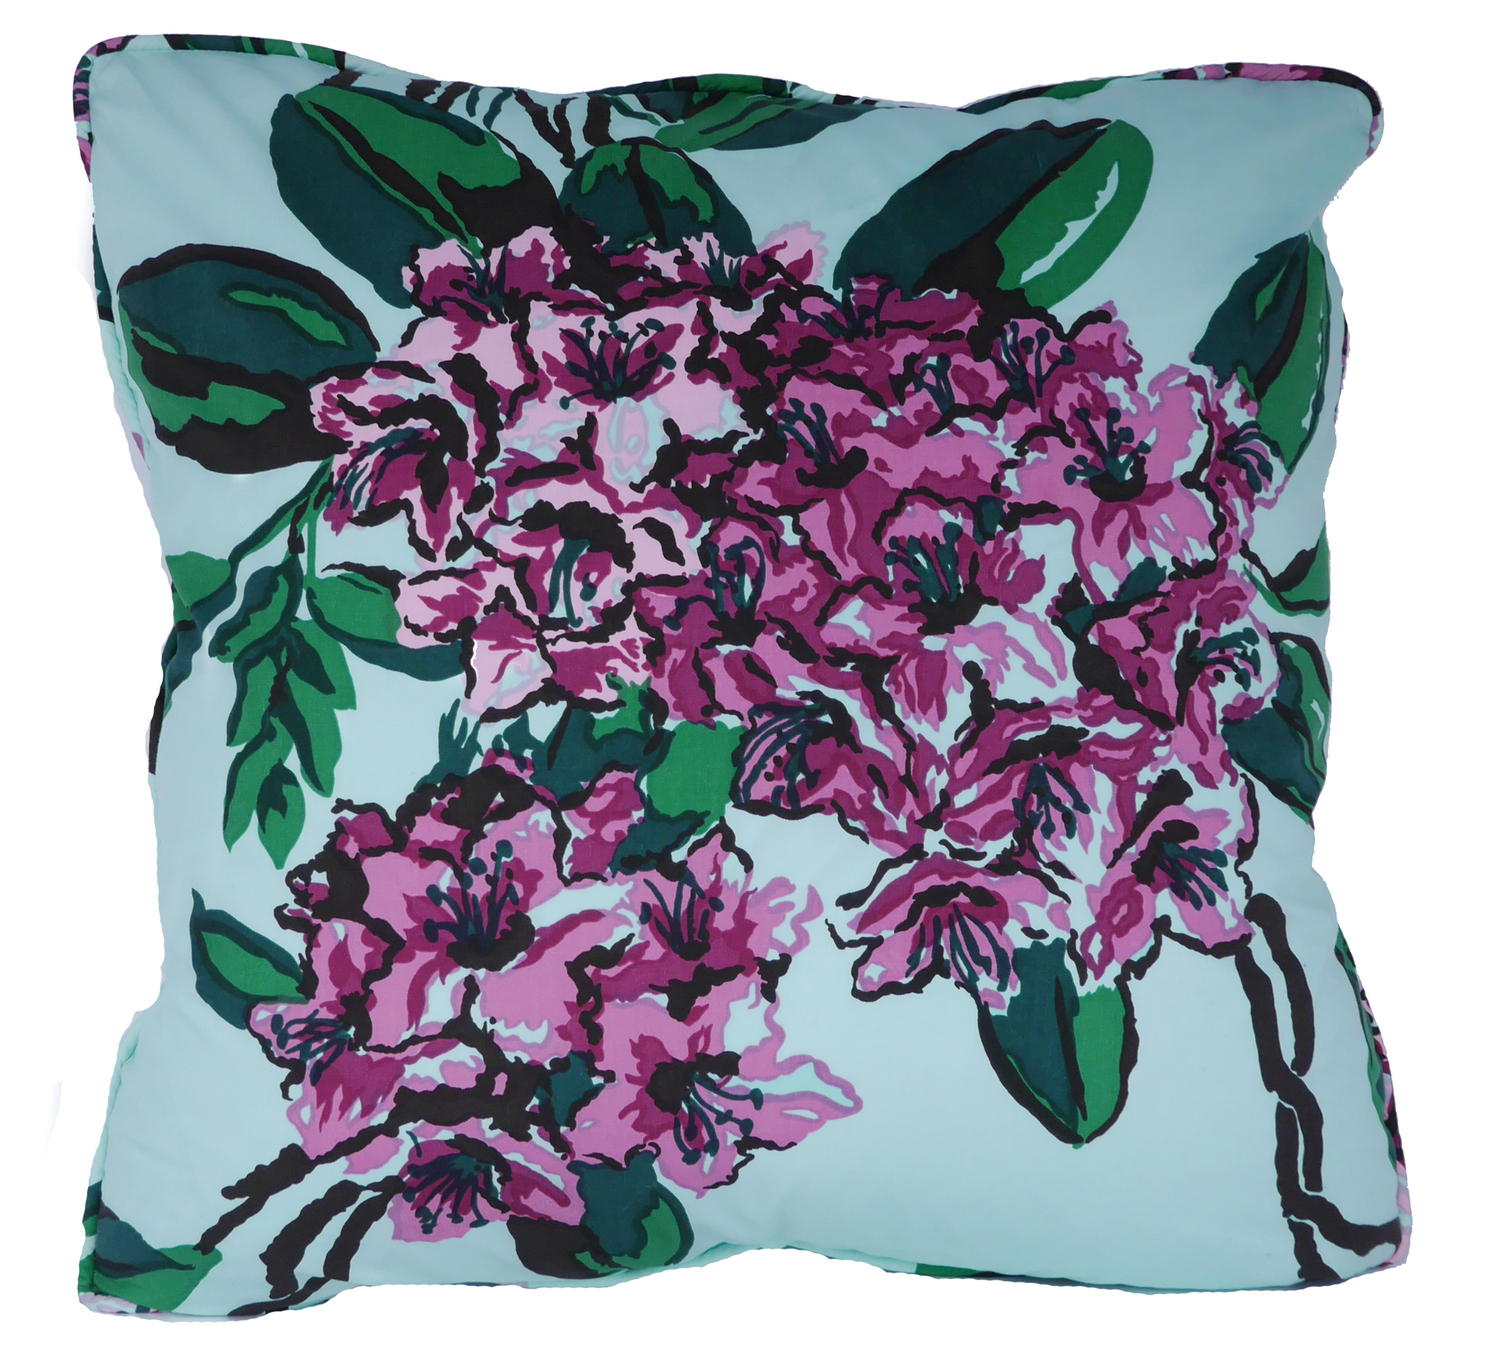 "Rhododendron Mint 20"" Throw Pillow Cover - Carleton Varney"